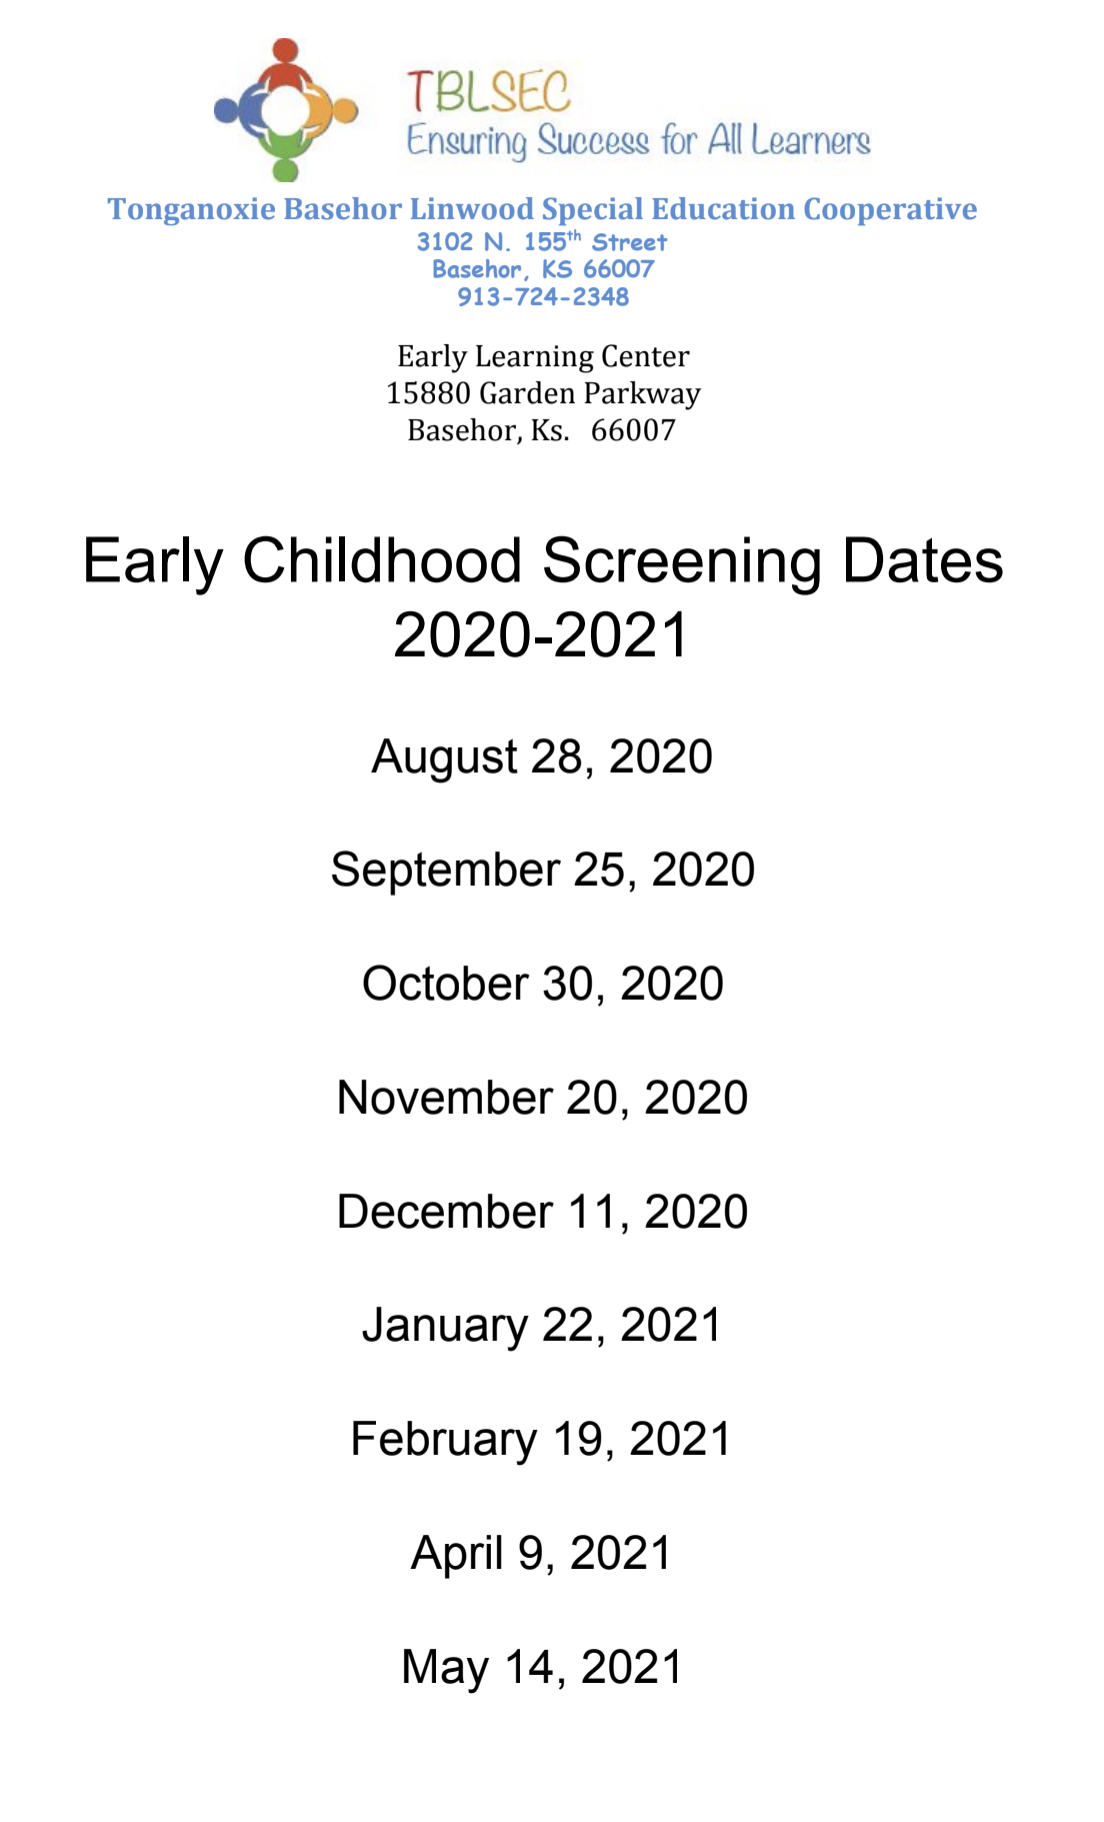 Screening Dates